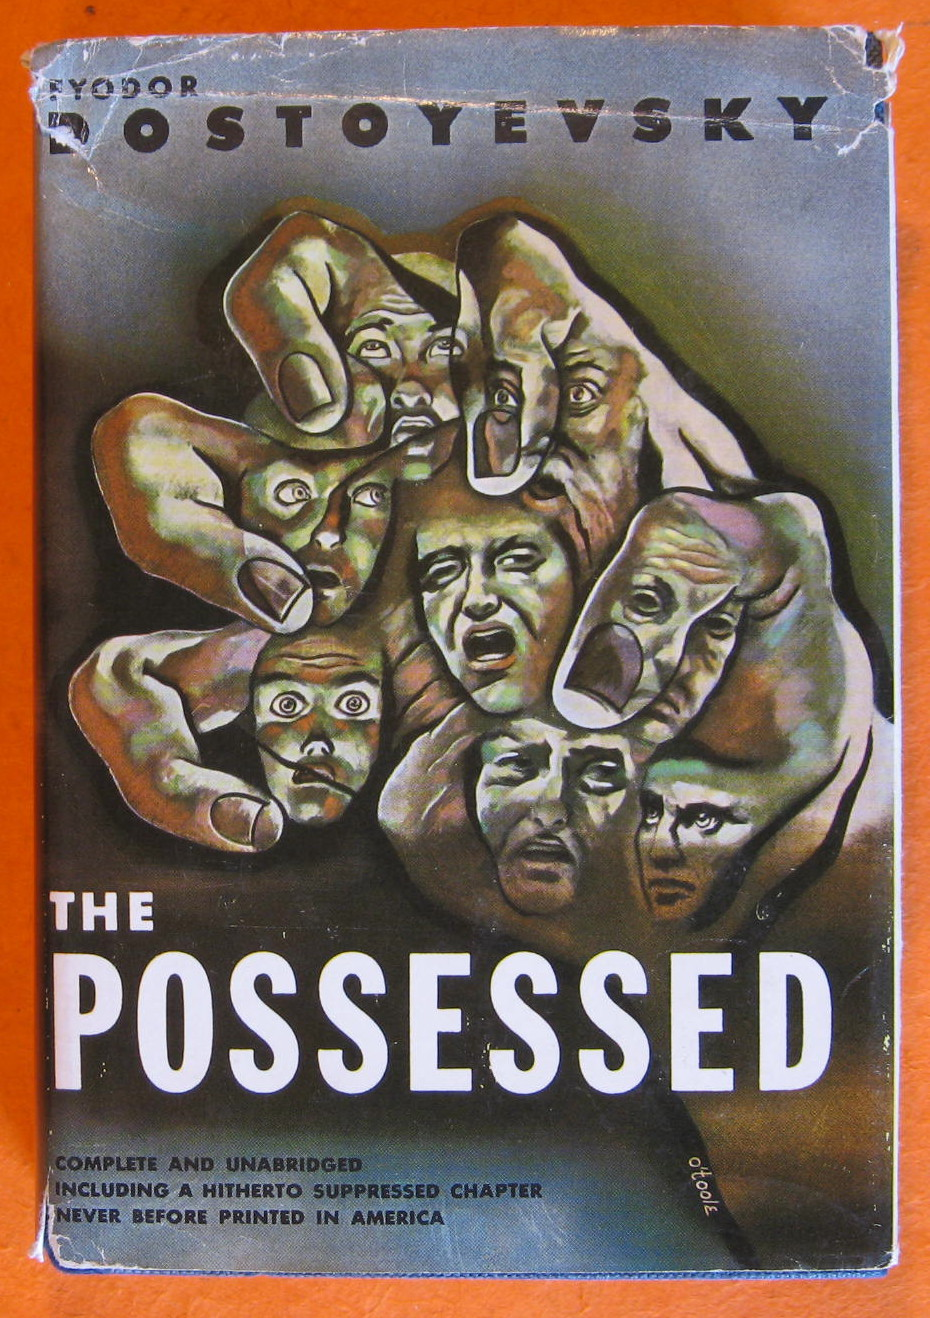 The Possessed, Dostoyevsky, Fyodor